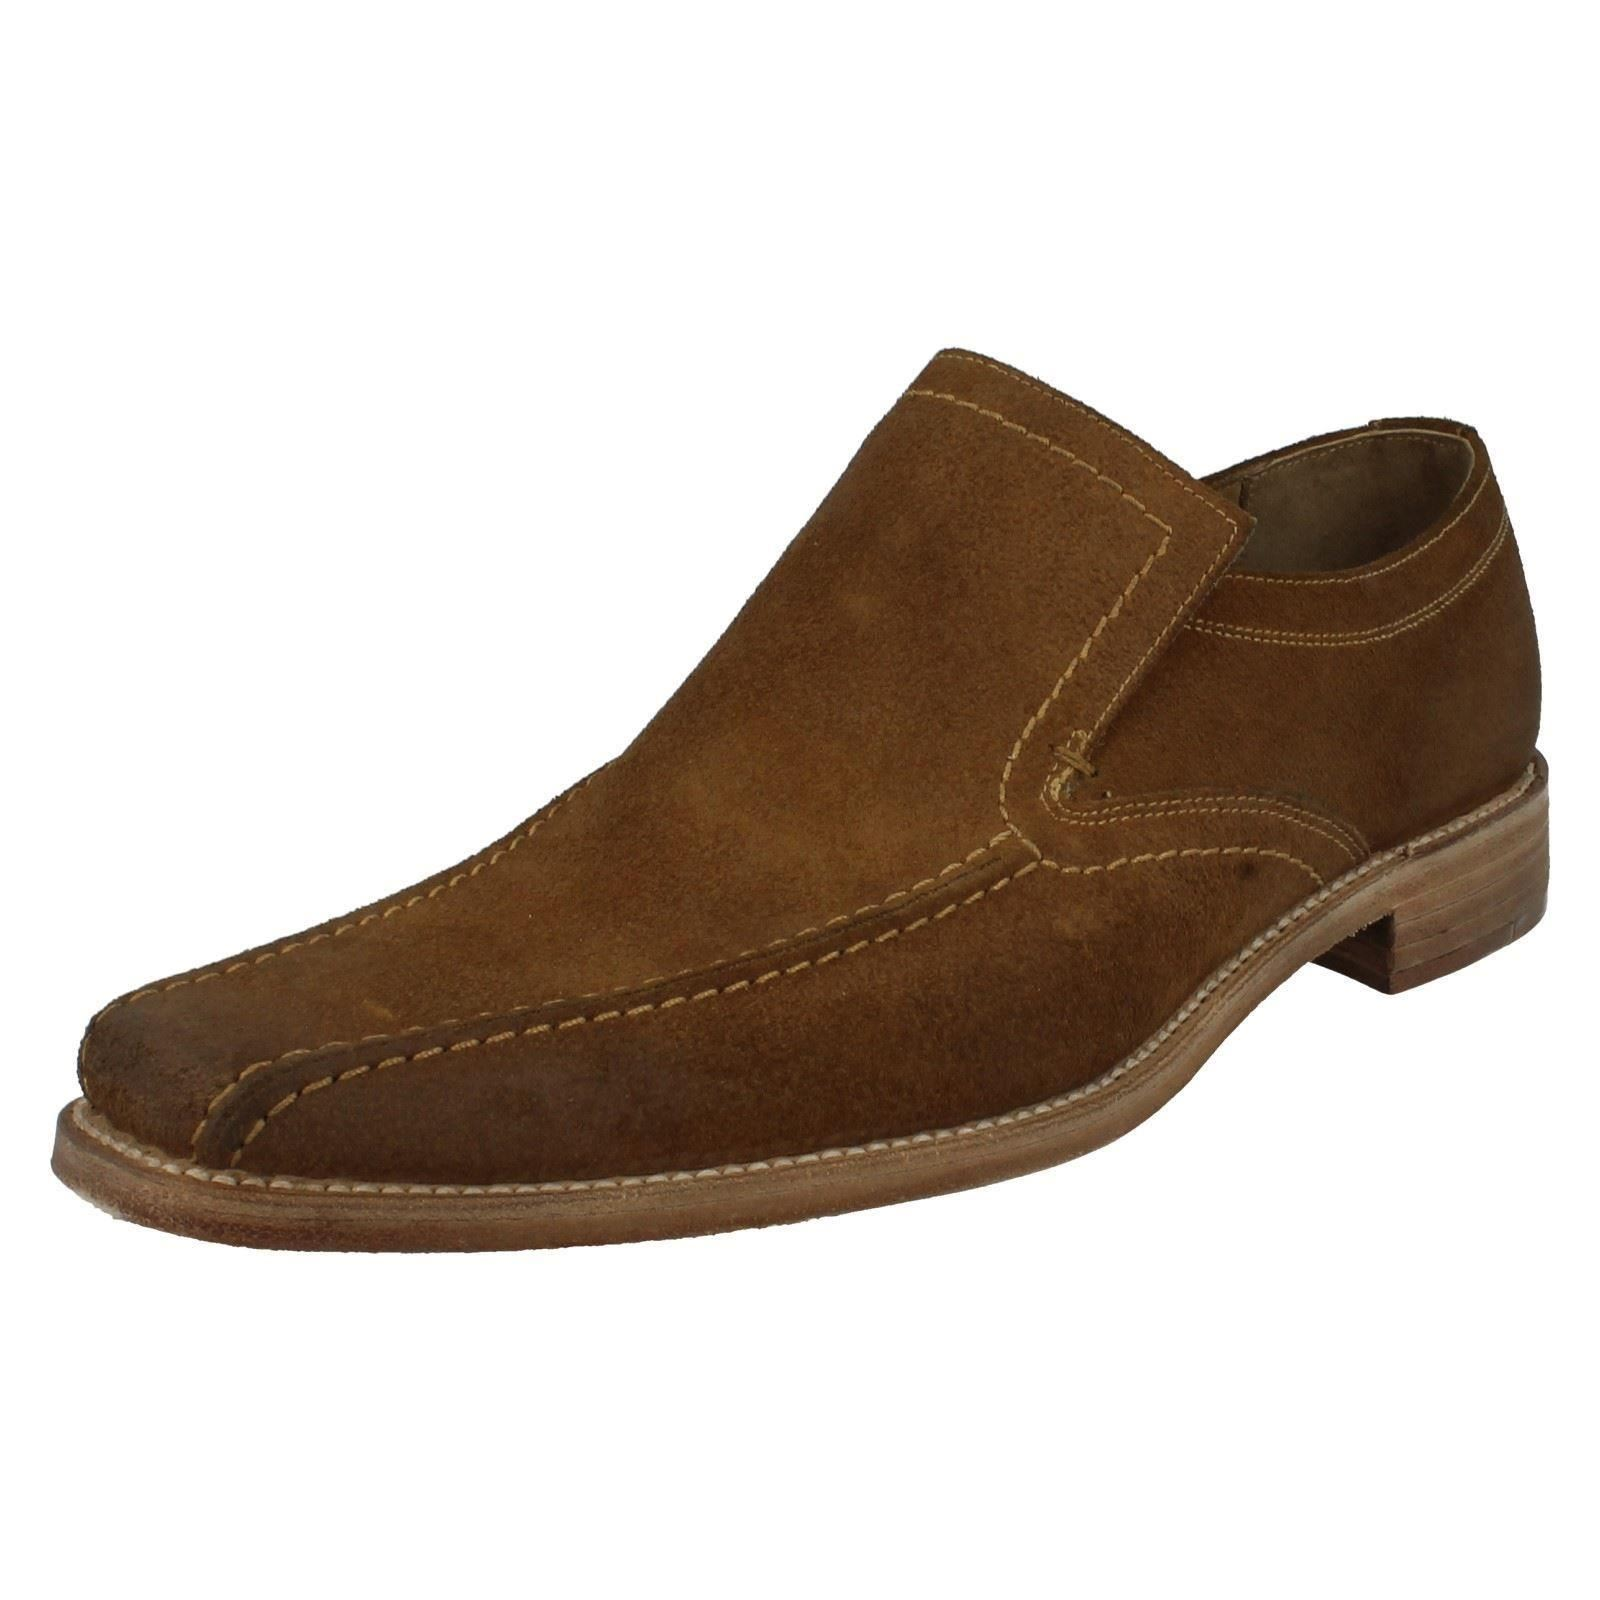 mens loake formal suede shoes label fitting f